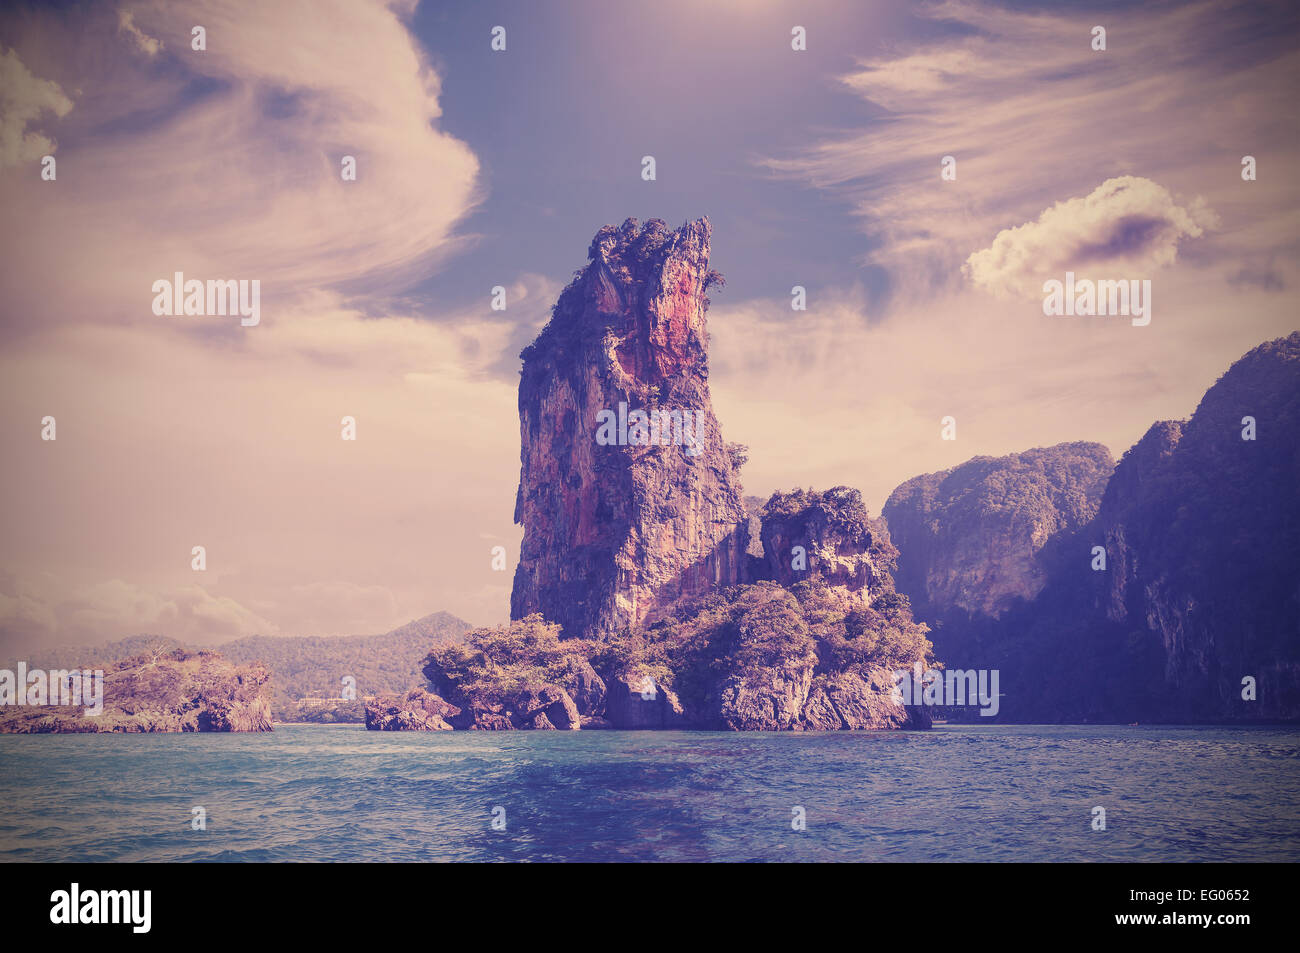 Rocky island, nature background retro filtered. - Stock Image